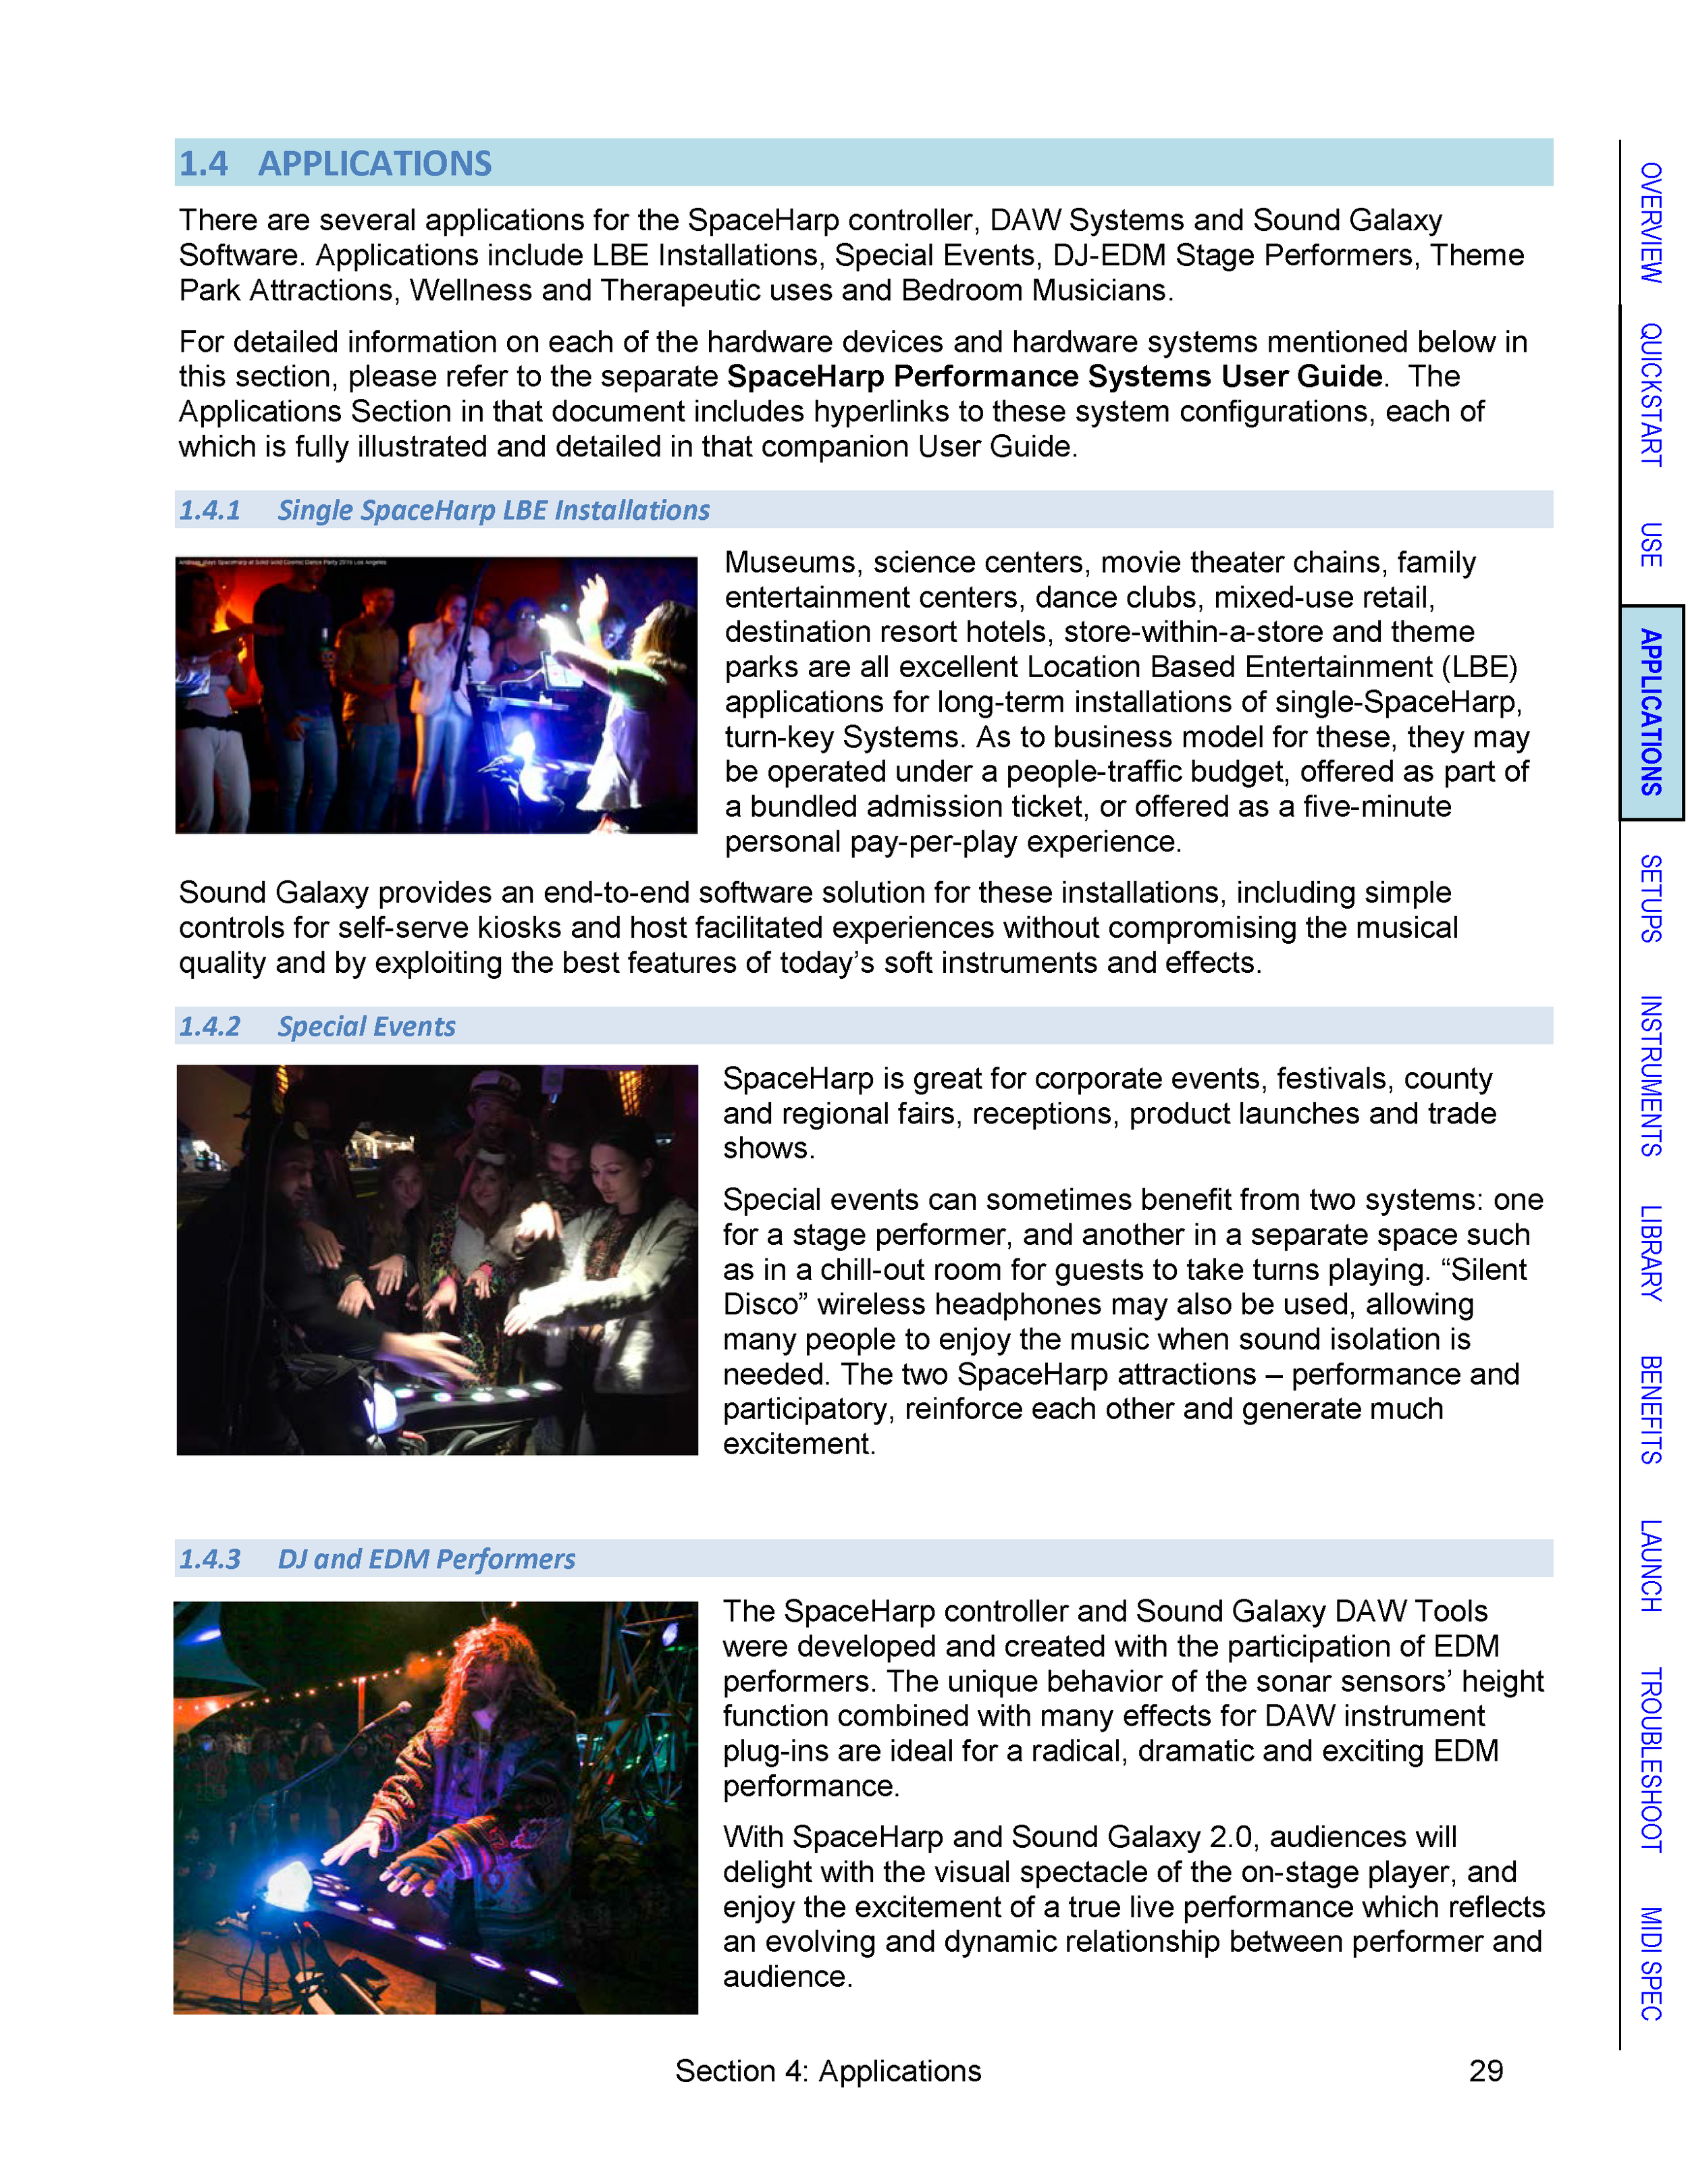 Sound_Galaxy_2_User_Guide_Oct-10-2017_released_Page_029.png